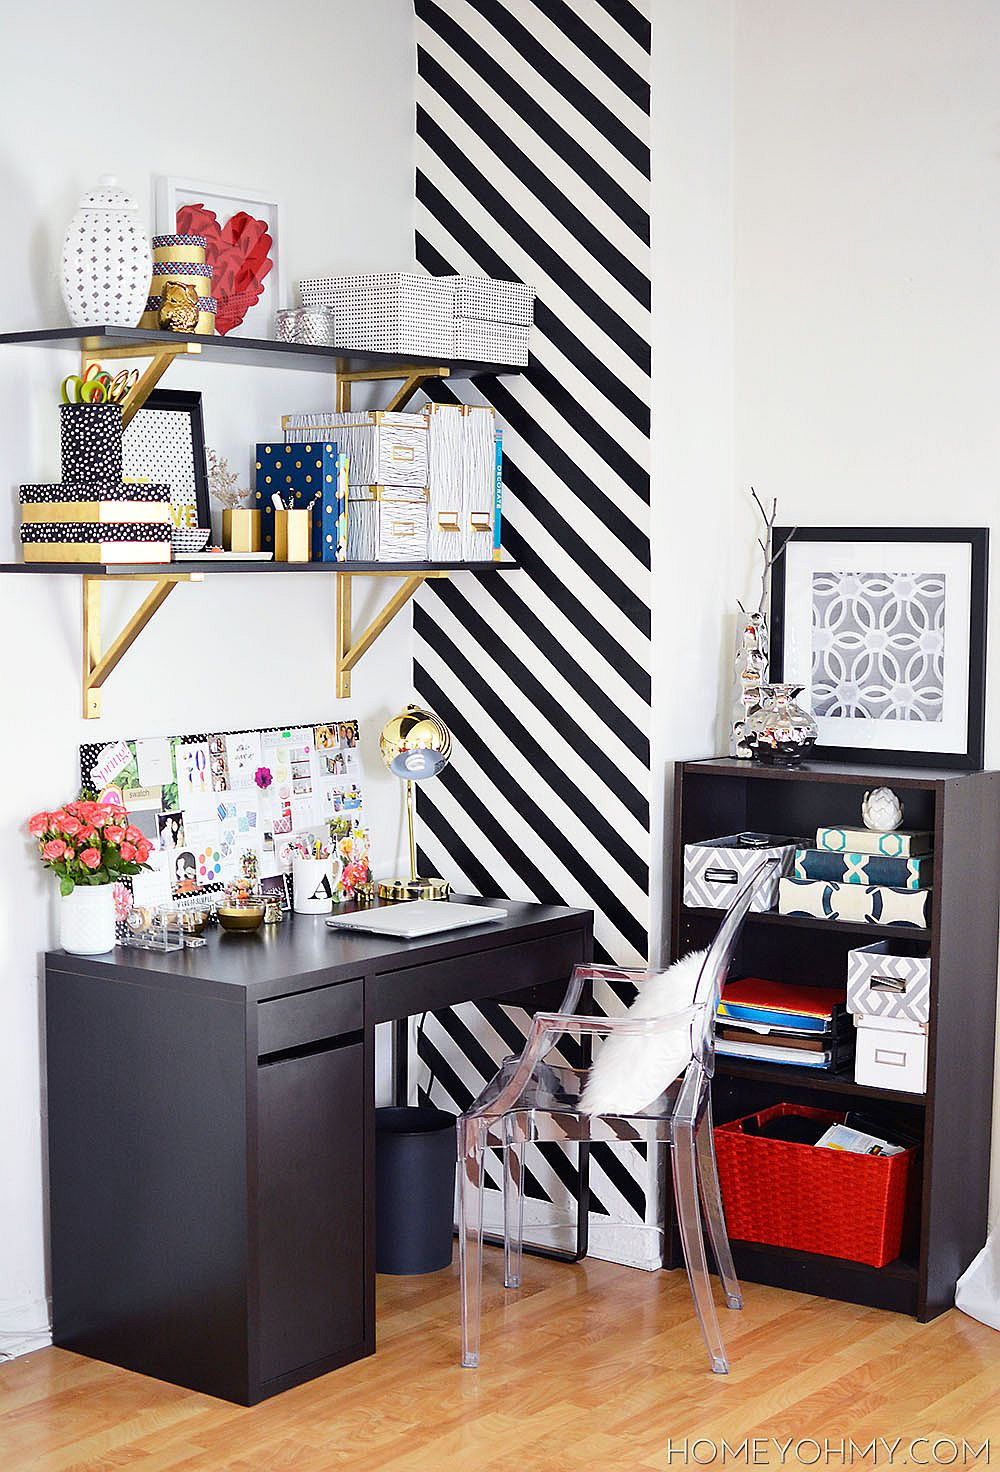 - 15 DIY Home Office Organization And Storage Ideas That Maximize Space